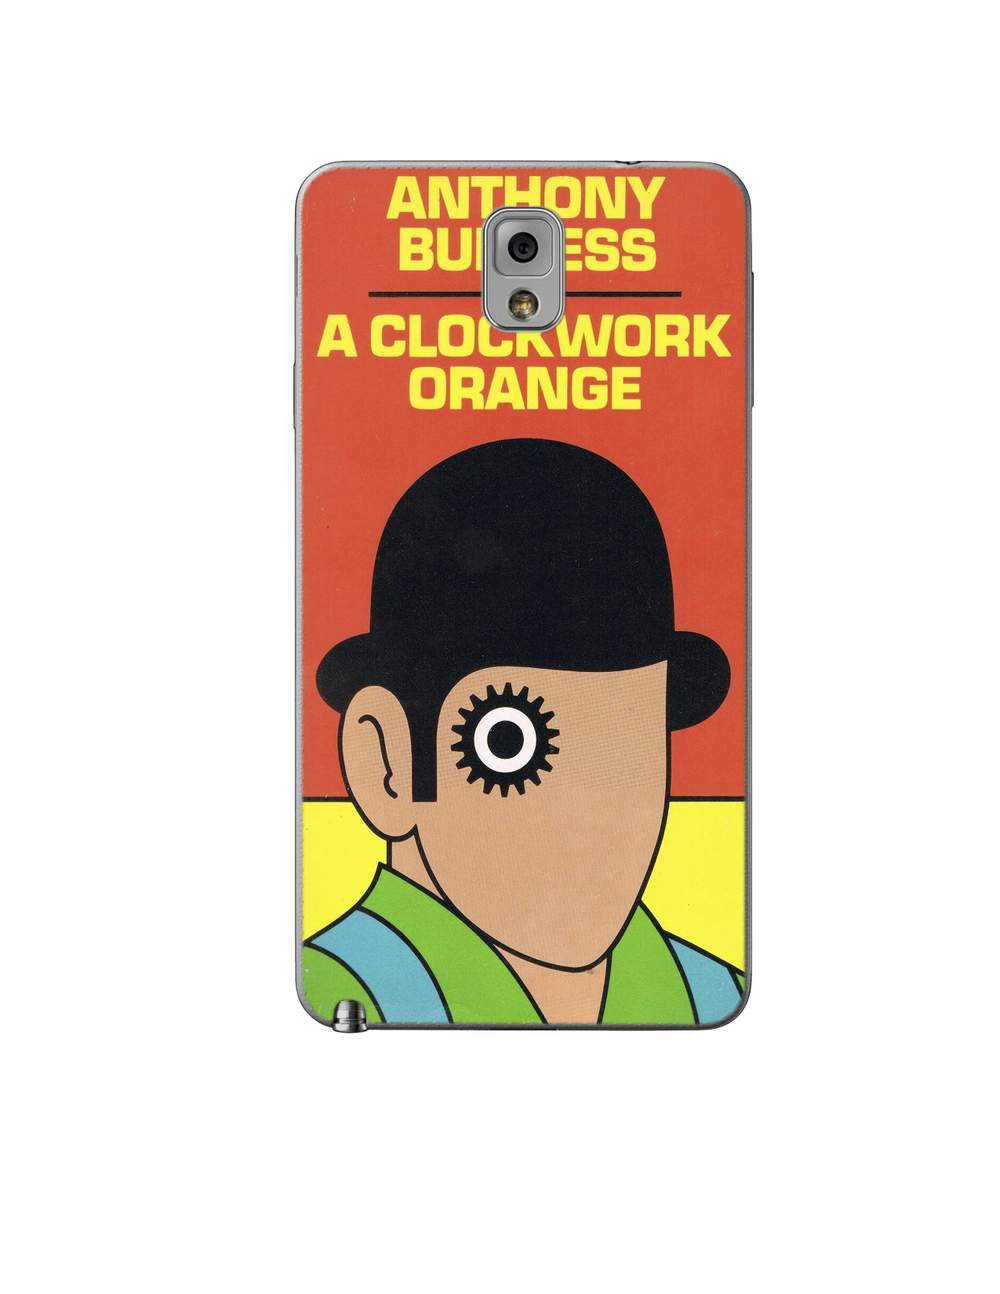 Clockwork Orange Cover Art